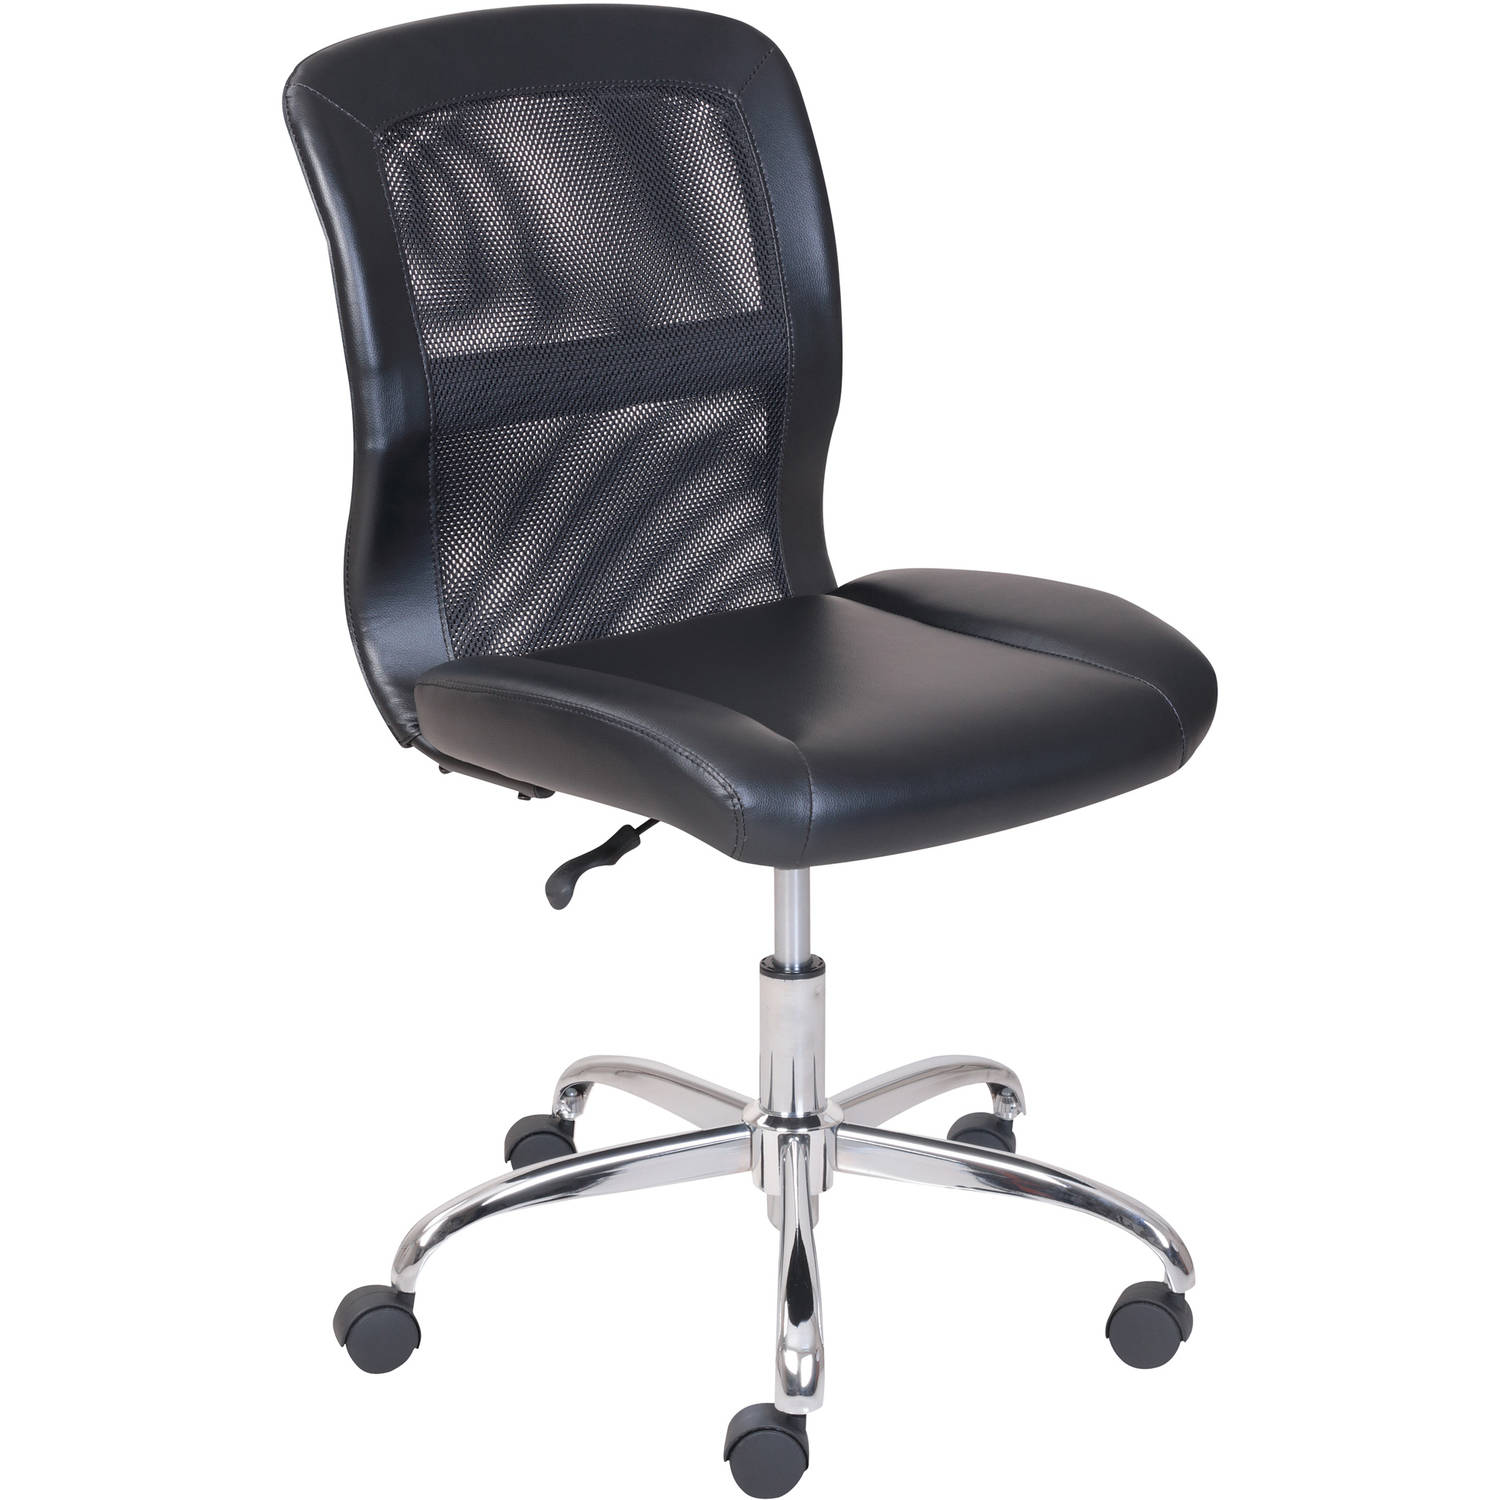 Mainstays Vinyl and Mesh Task Office Chair, Multiple Colors - Traveller Location